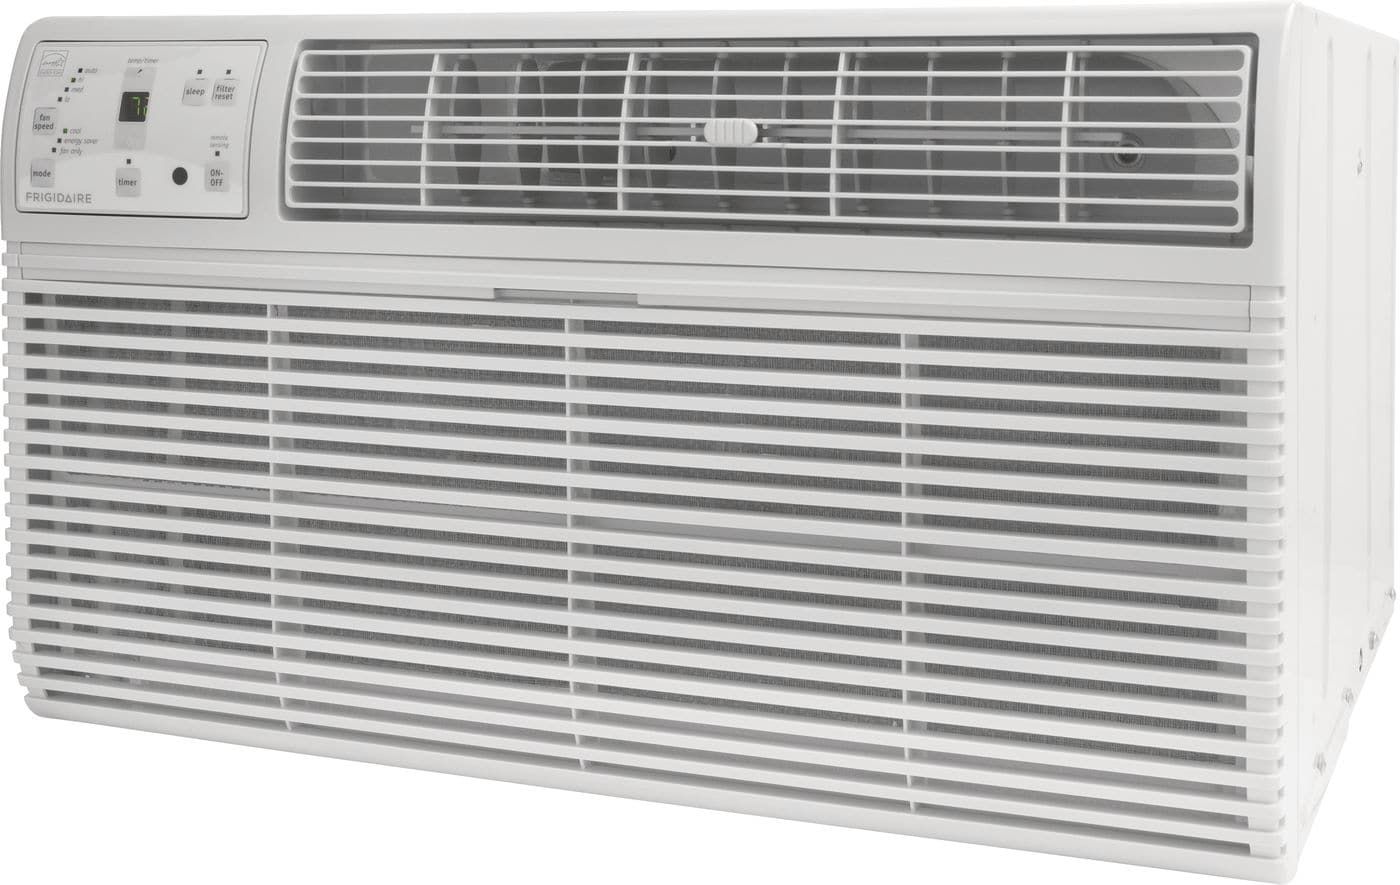 Model: FFTA1033Q2 | Frigidaire 10,000 BTU Built-In Room Air Conditioner